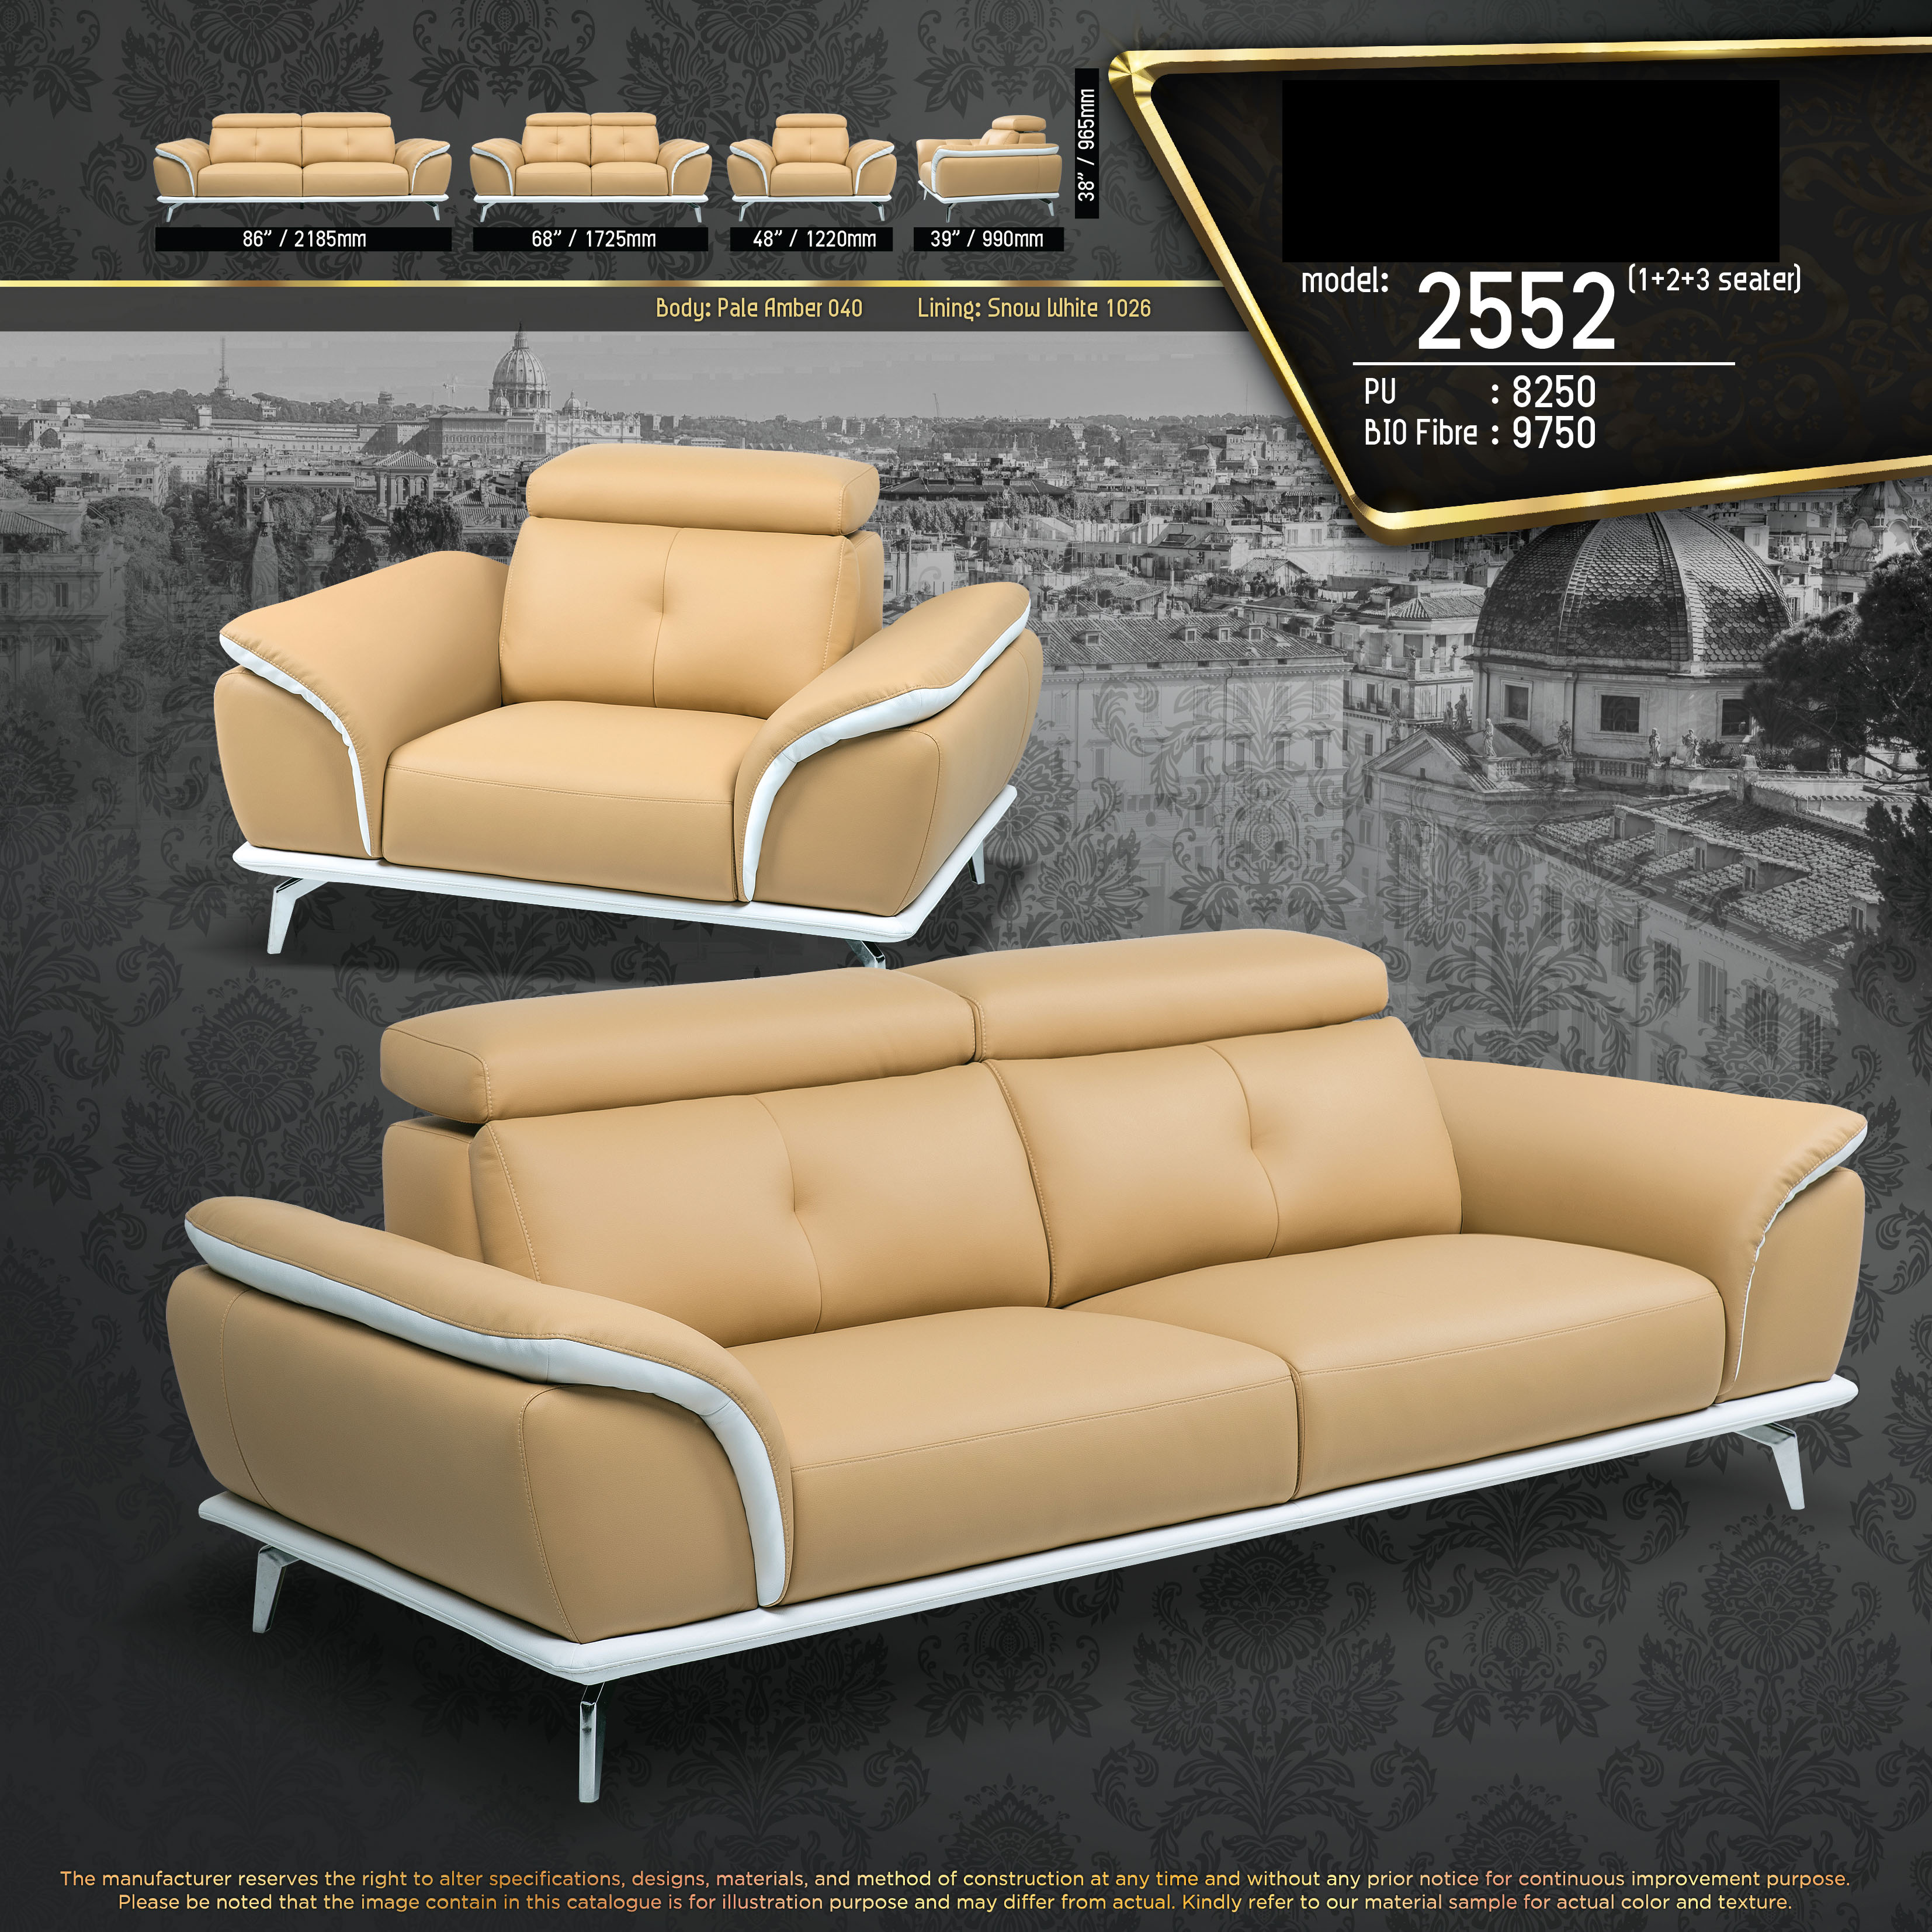 Boston 1+2+3 Seater Fully Leather Sofa Lounge Chair Living Hall Sofa